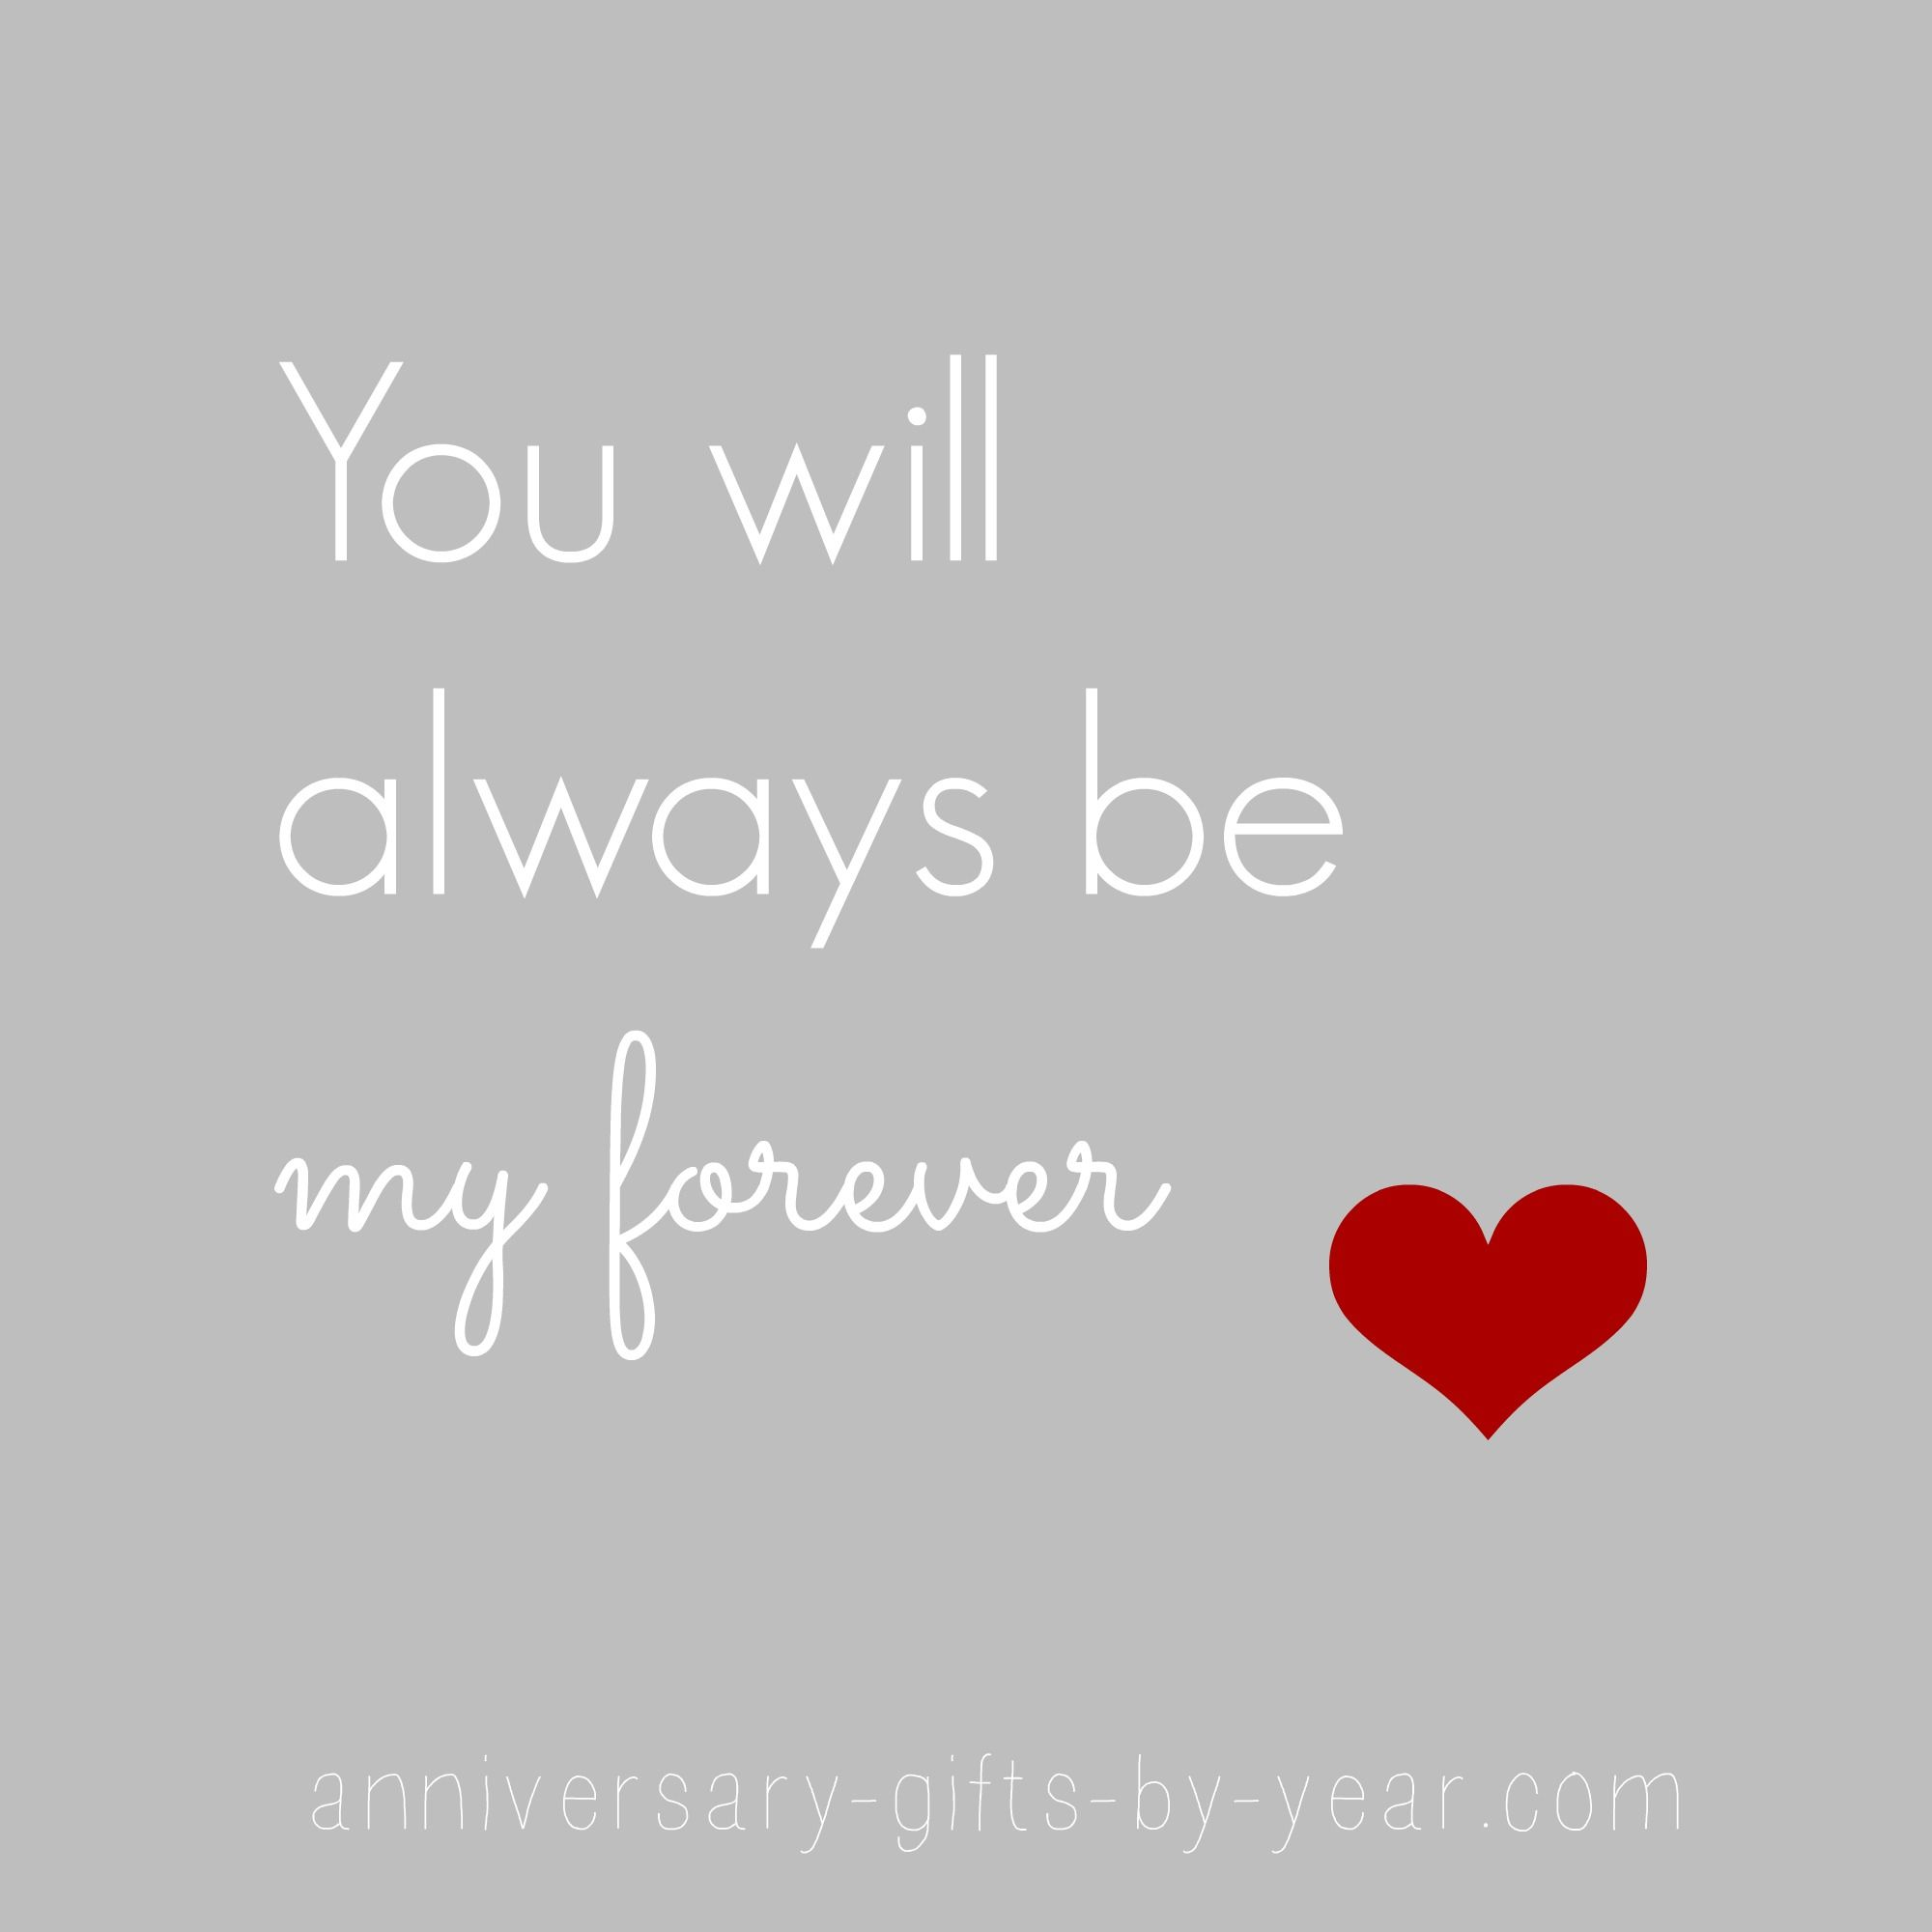 You Will Always Be Anniversary Quotes